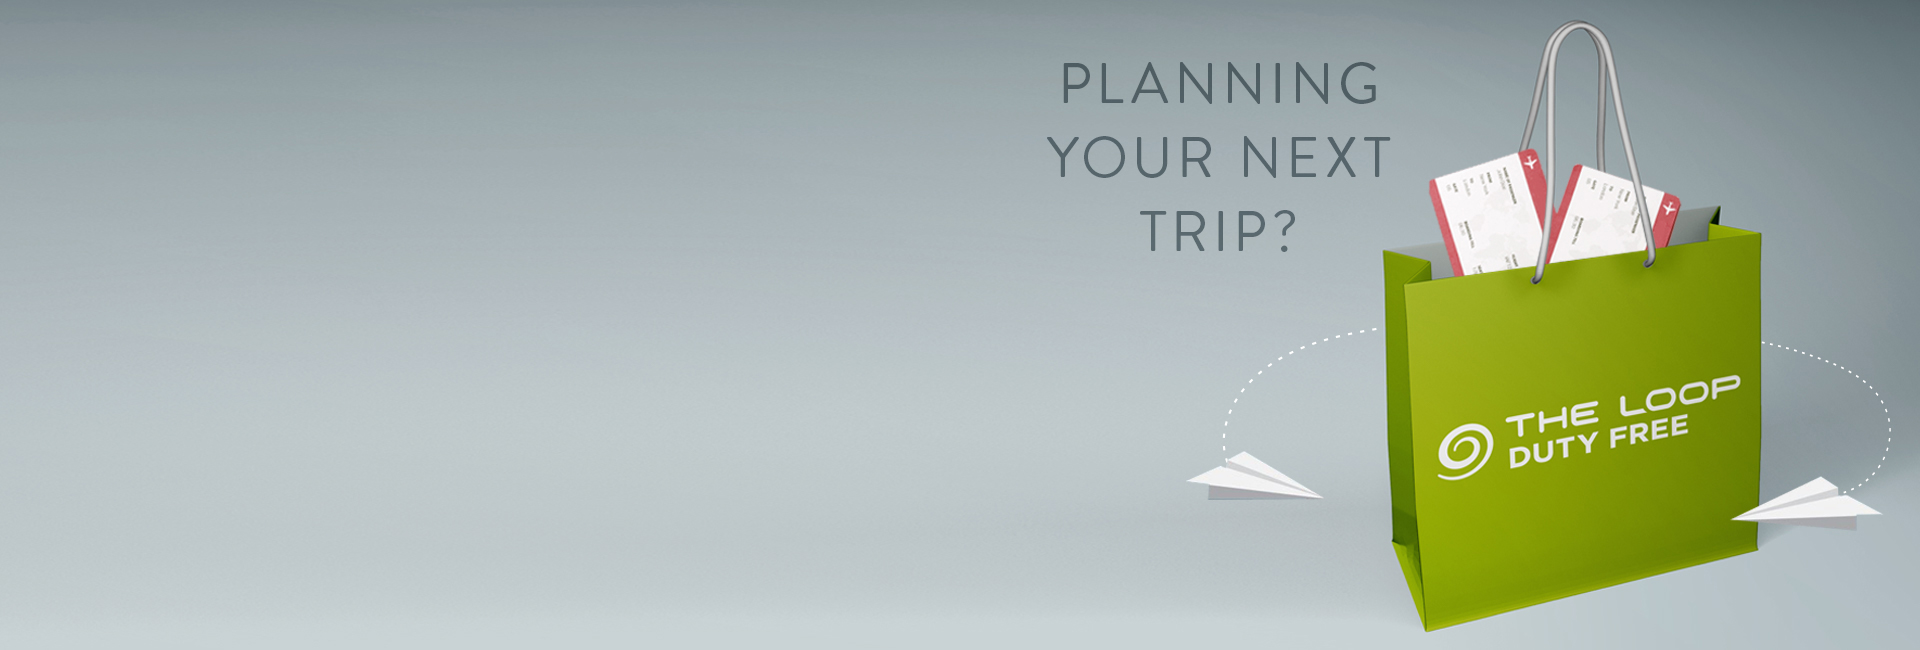 planning your next trip